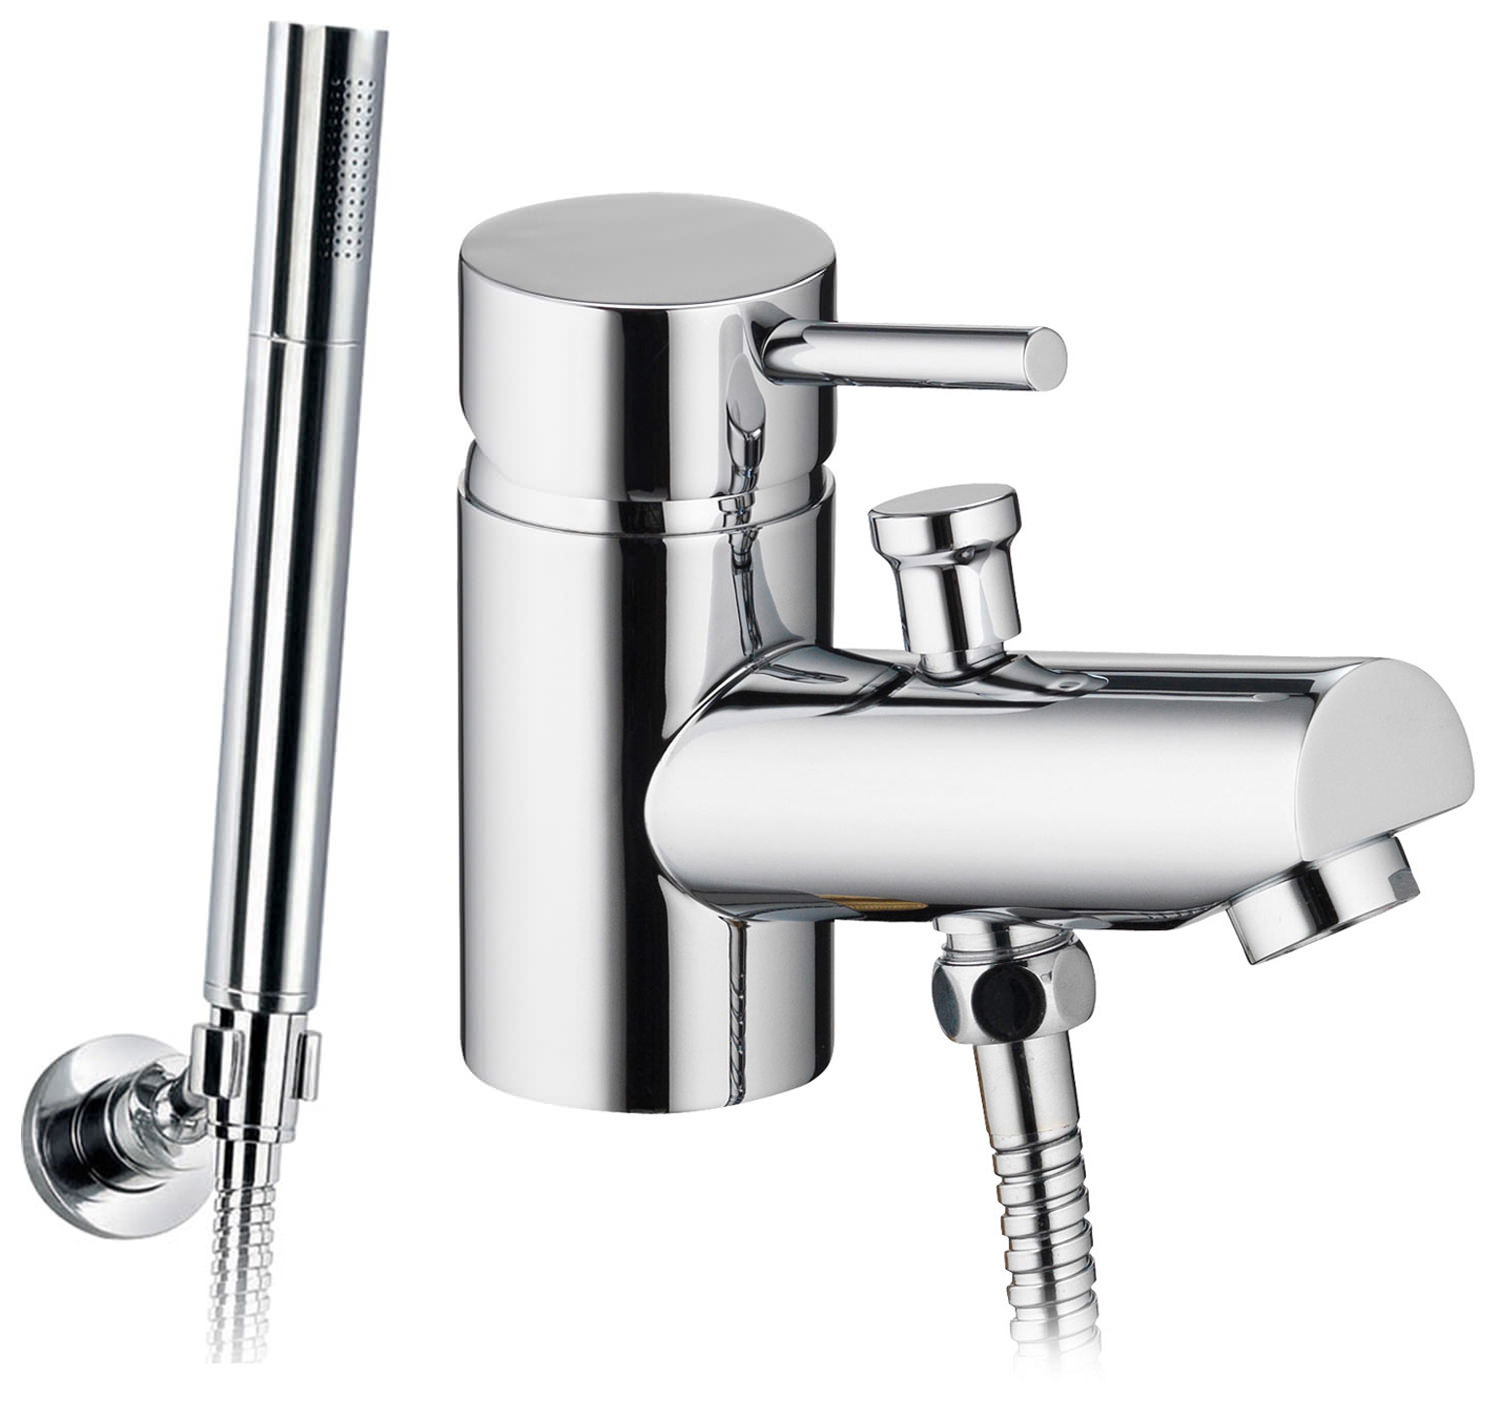 Pura Xcite Mono Bathshower Mixer Tap With Handset And Hose